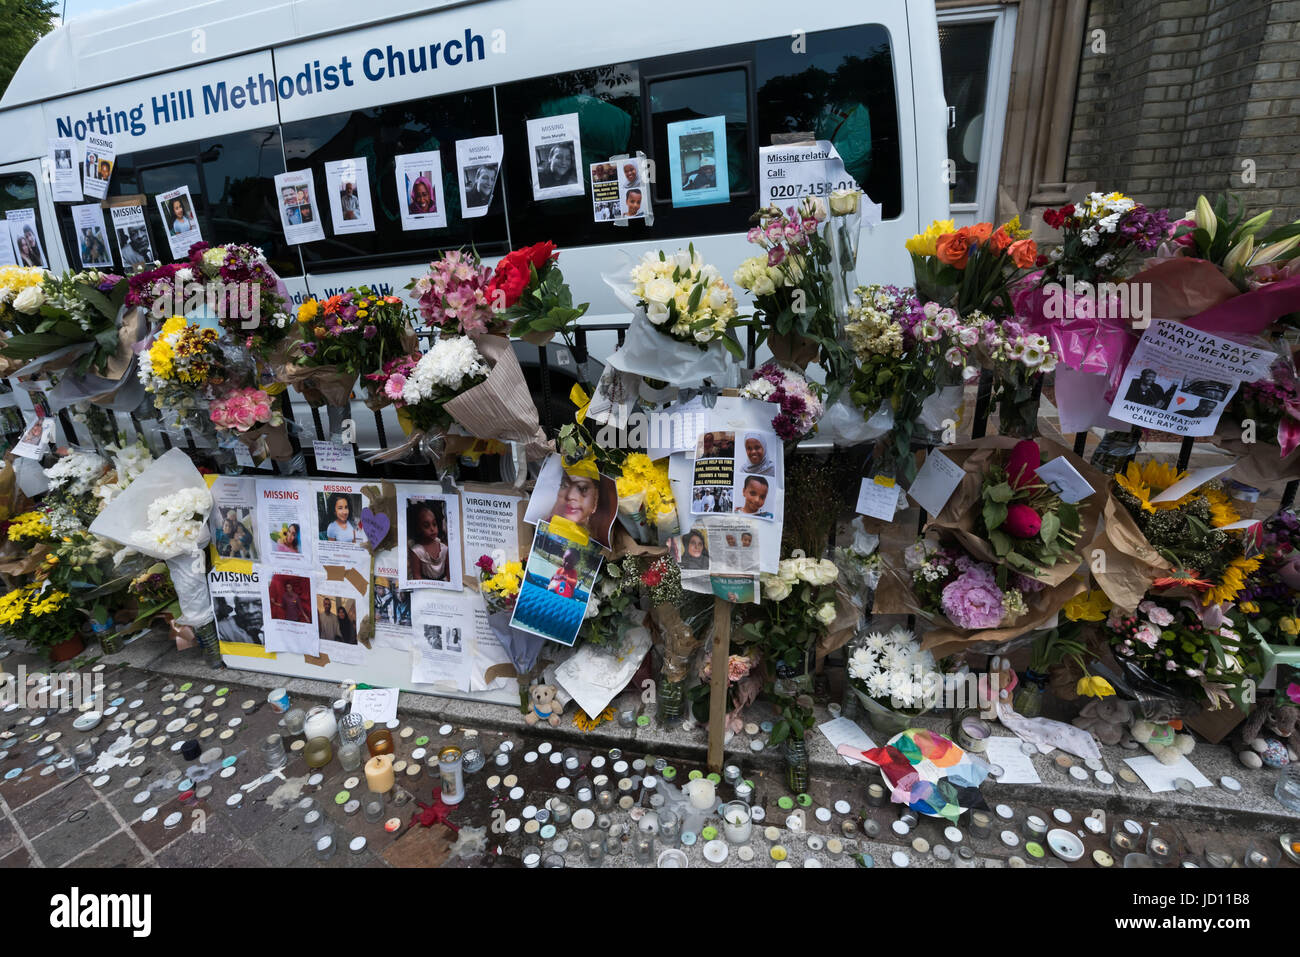 June 17, 2017 - London, UK - London, UK. 17th June 2017. Posters on lamp posts, walls and noticeboards display the - Stock Image